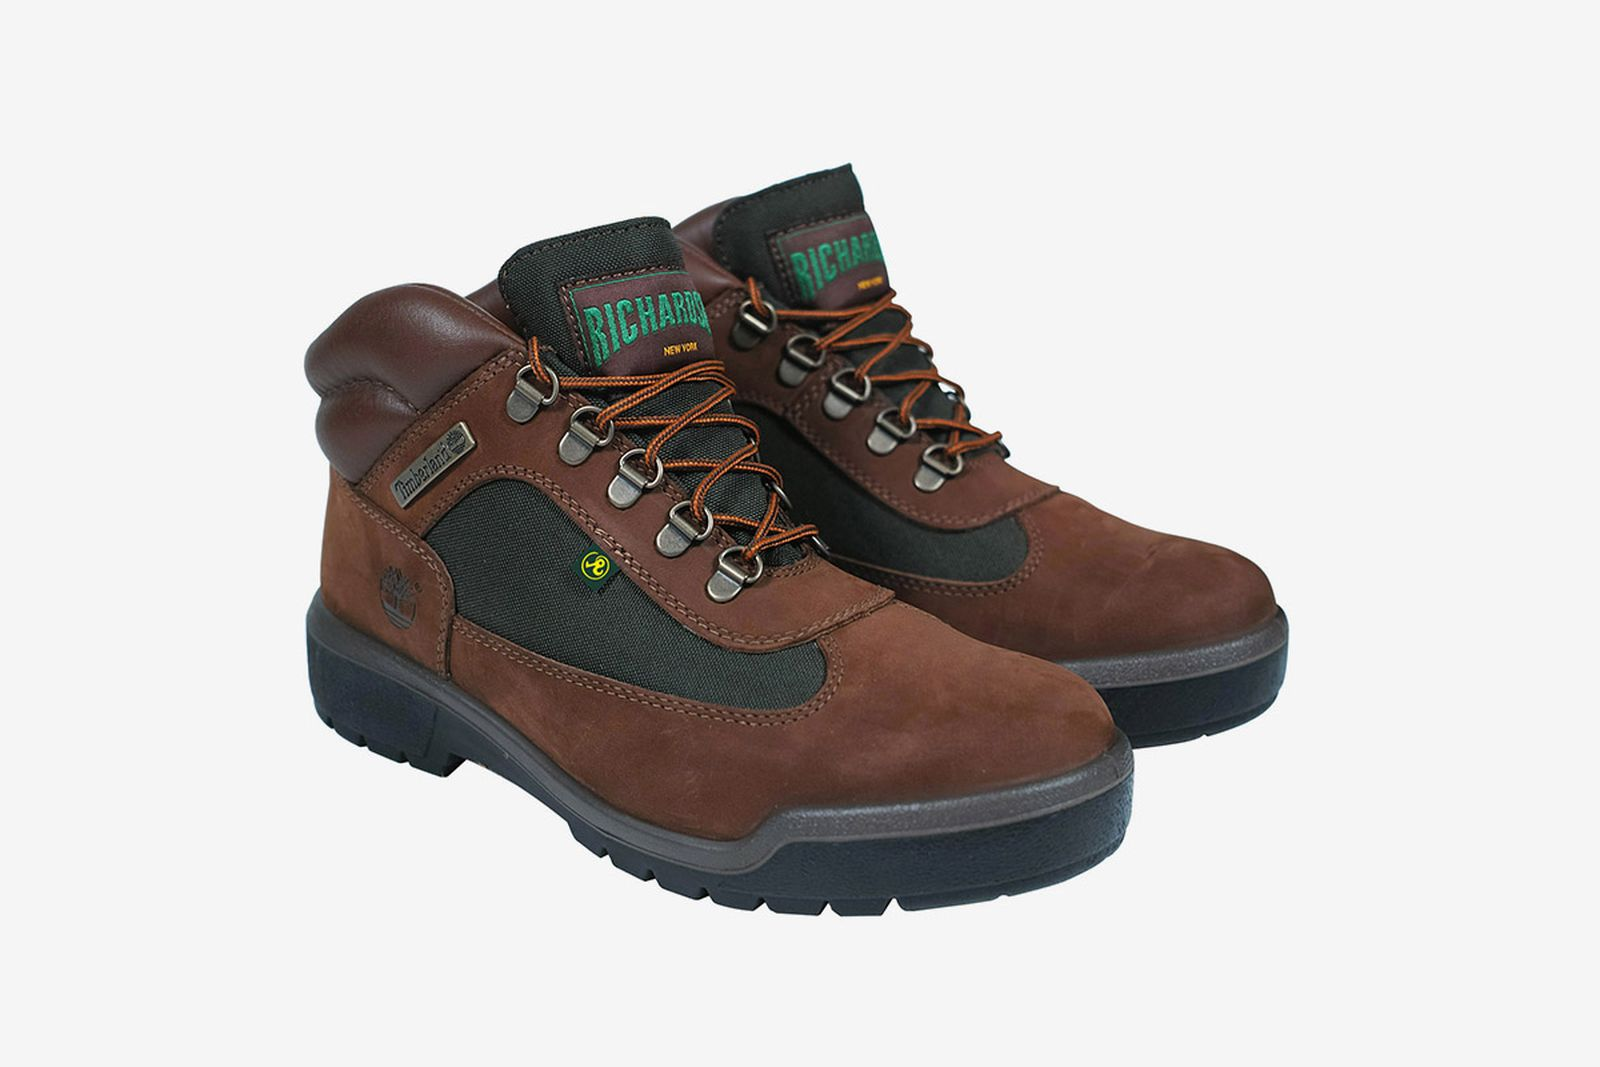 richardson-timberland-field-boot-release-date-price-06